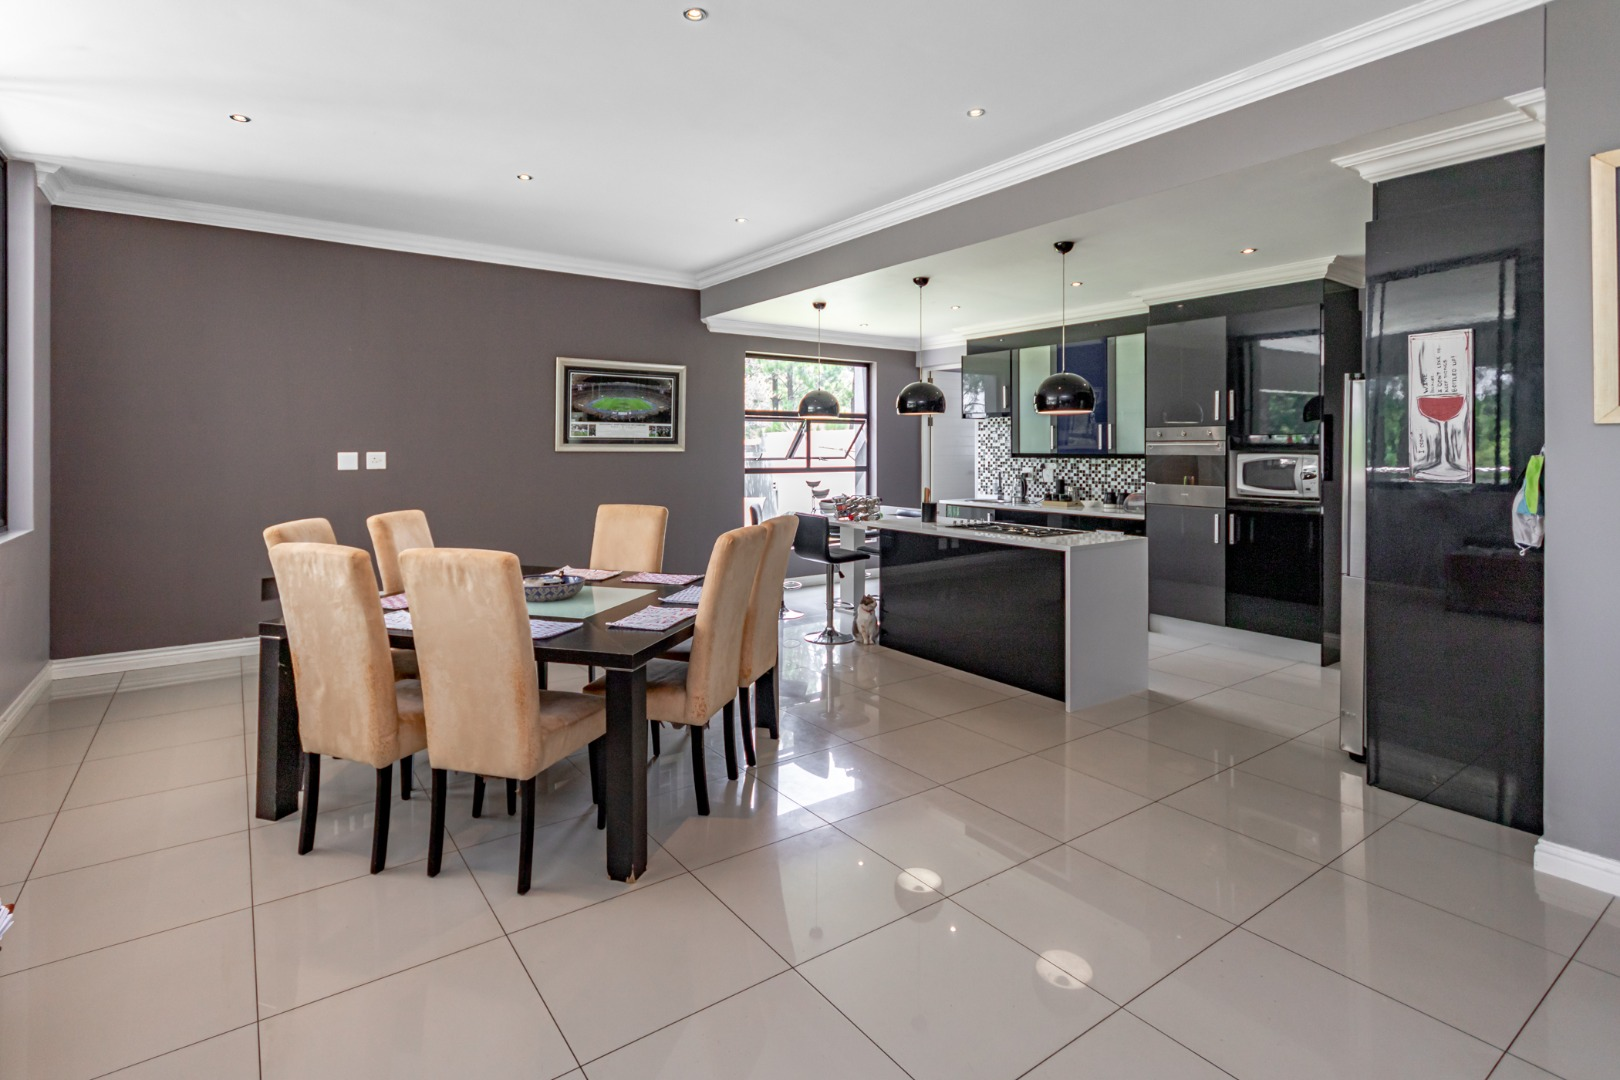 4 Bedroom House For Sale in Eye Of Africa Estate